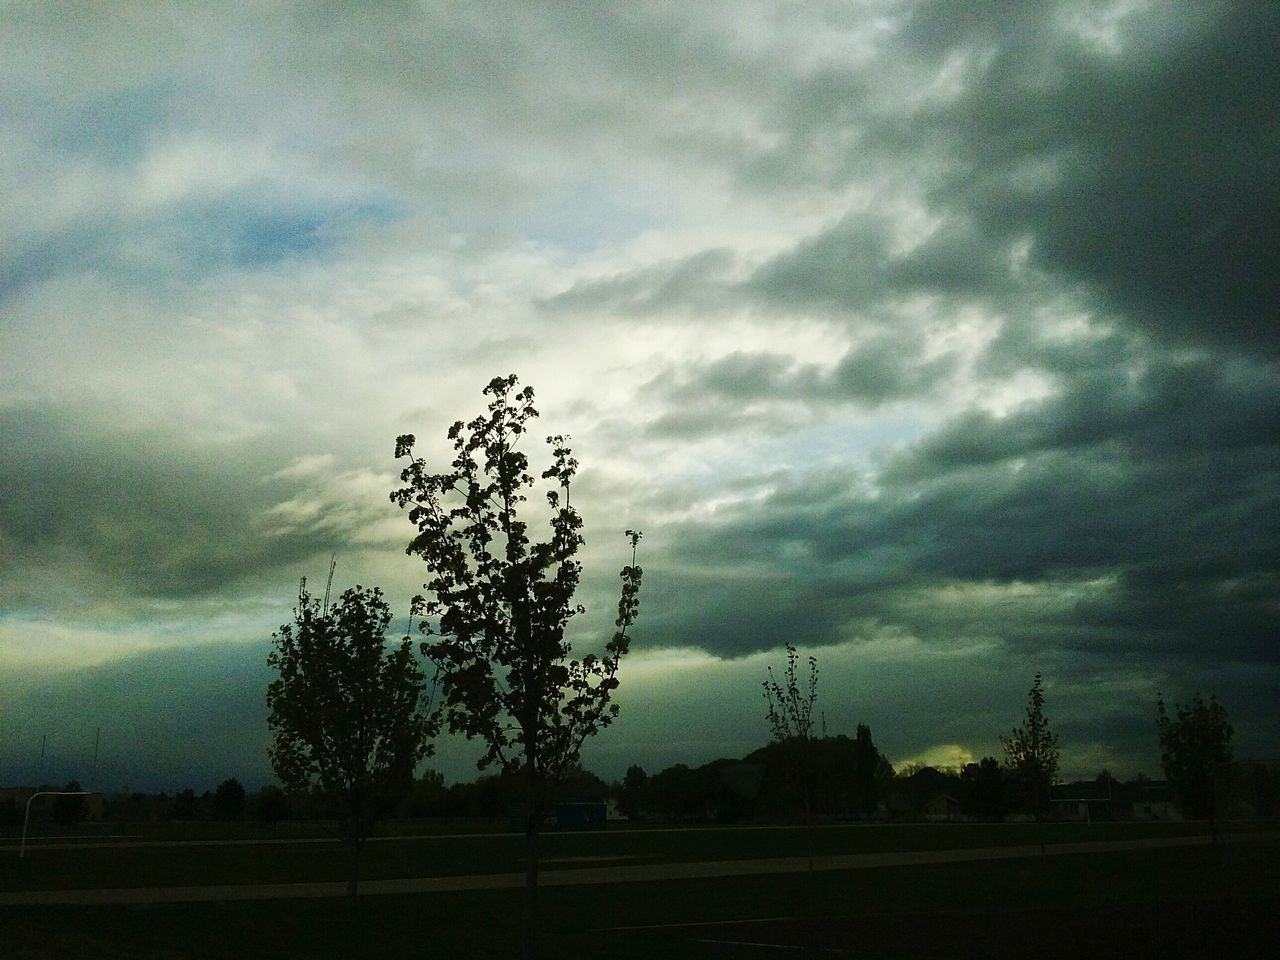 tree, sky, cloud - sky, nature, landscape, no people, field, tranquility, beauty in nature, growth, silhouette, scenics, outdoors, day, storm cloud